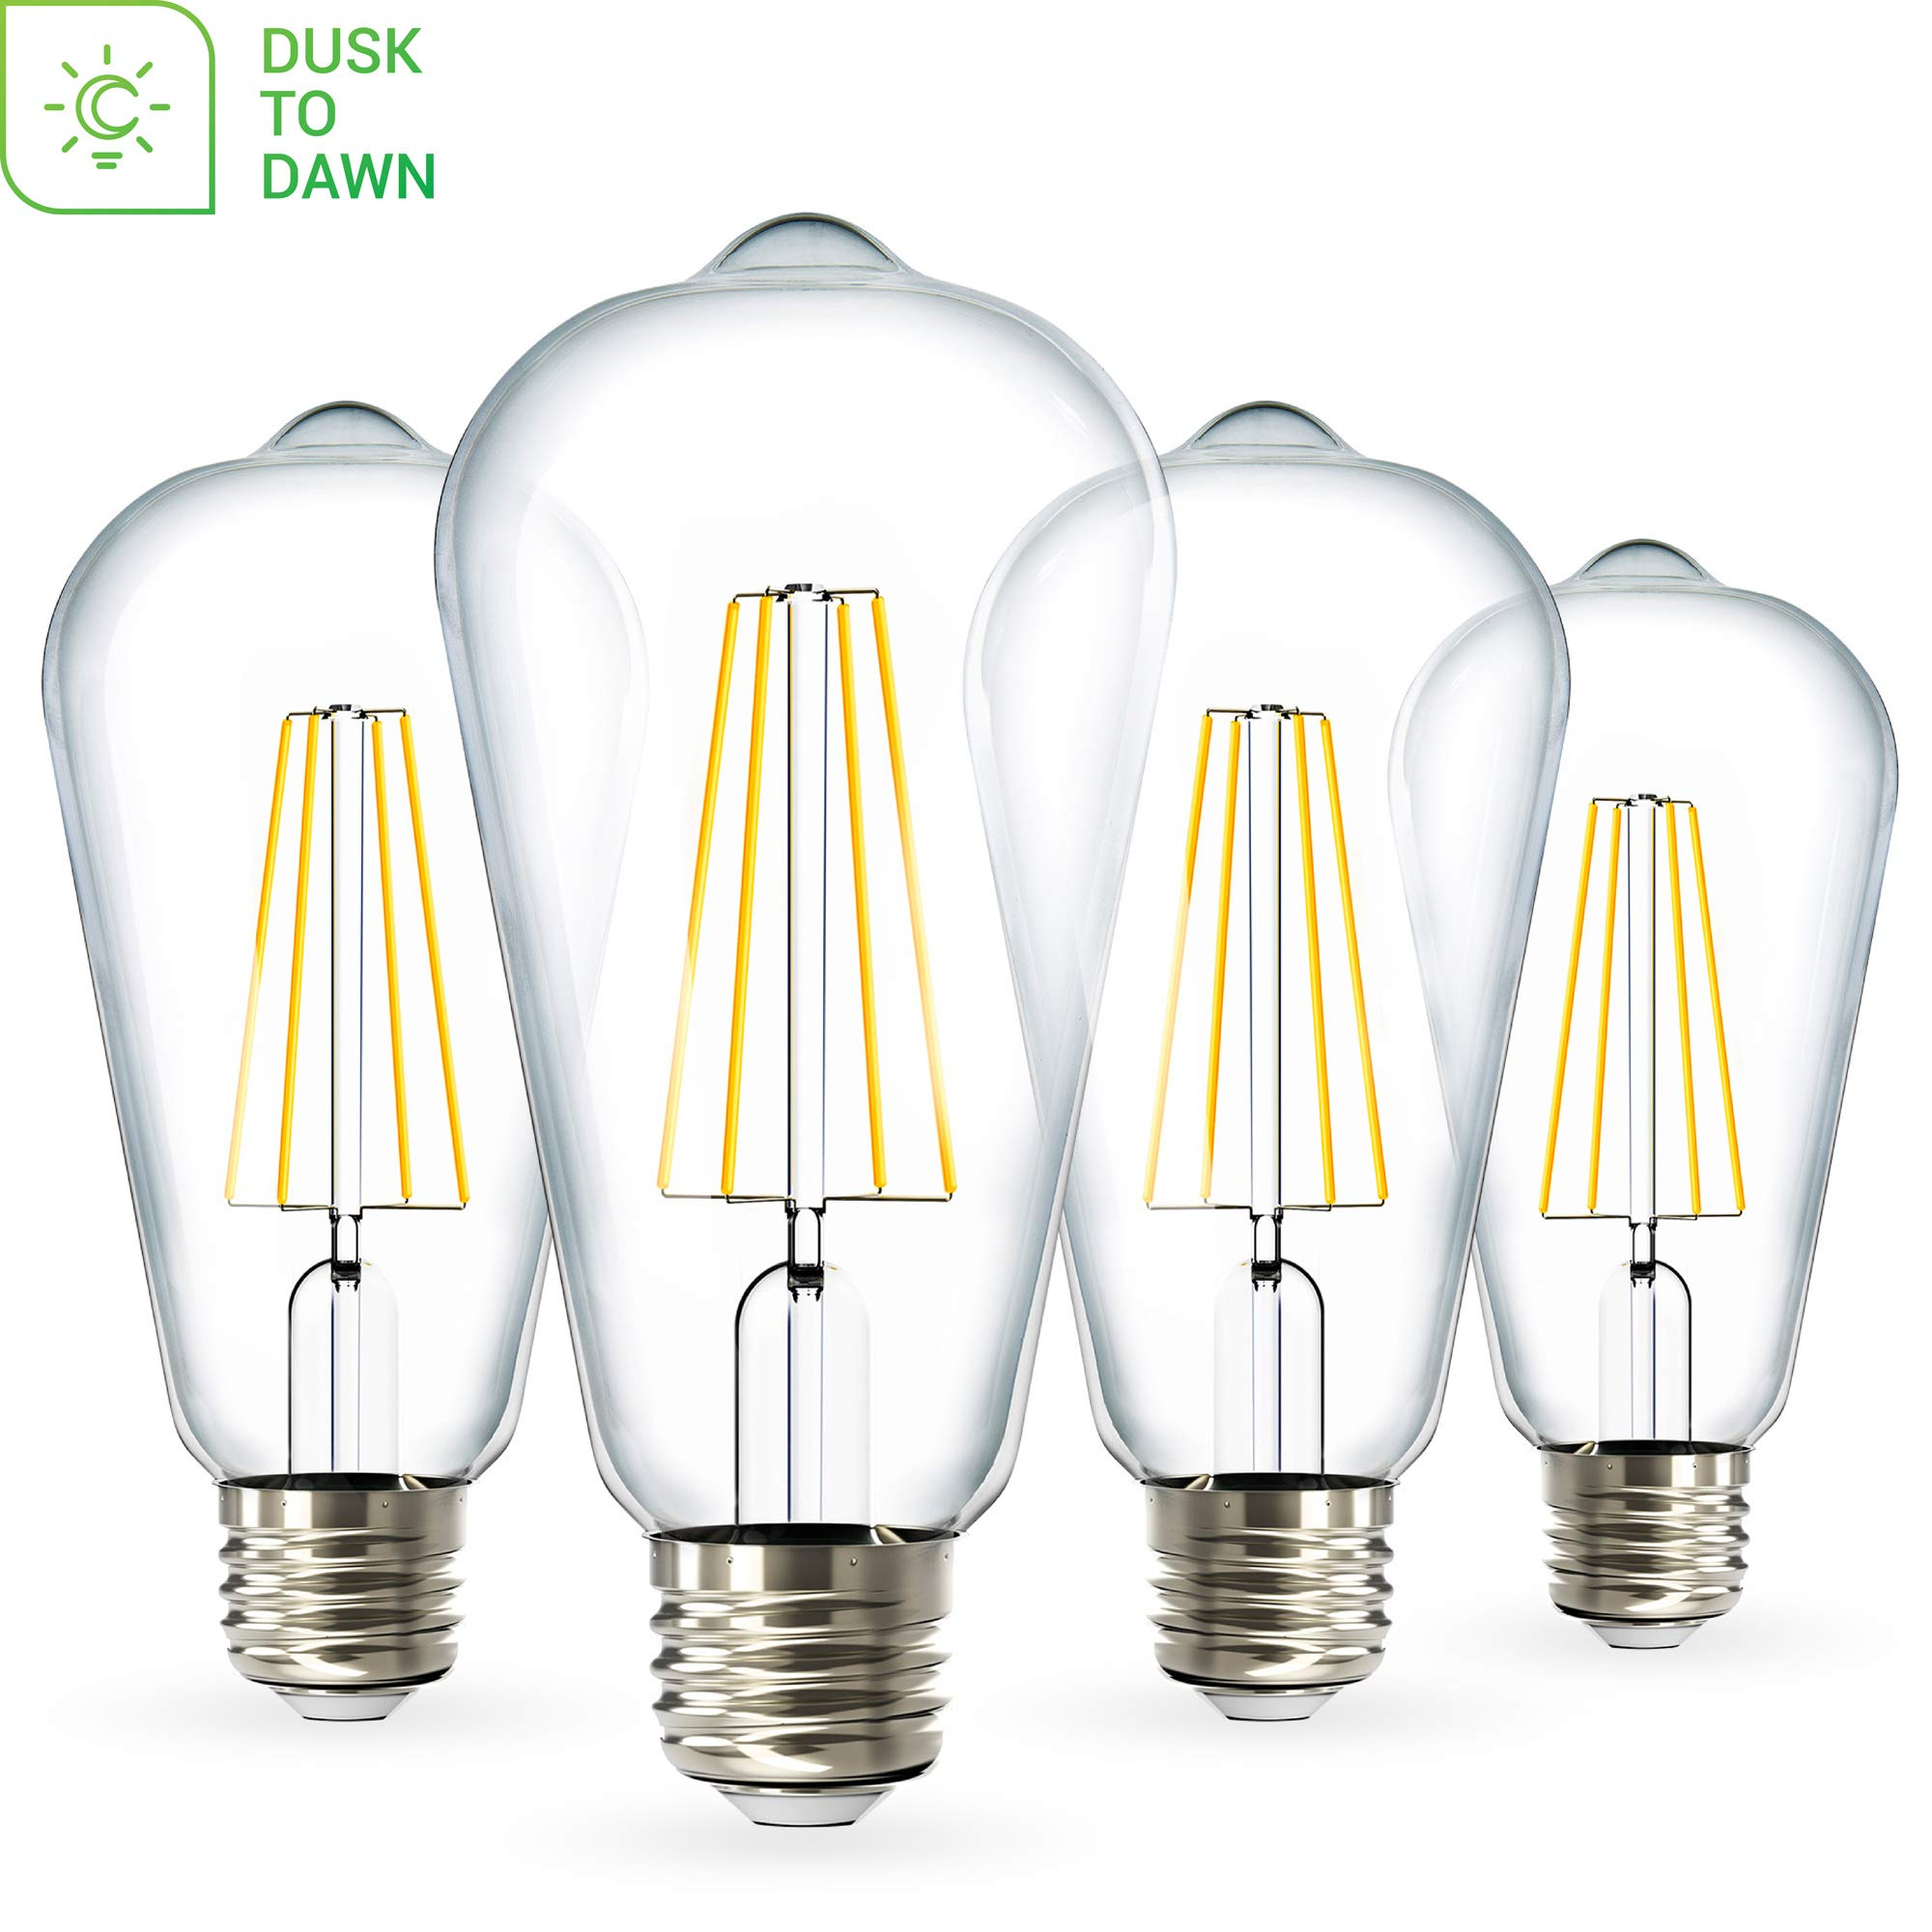 Sunco Lighting 4 Pack ST64 LED Bulb, Dusk-to-Dawn, 7W=60W, 5000K Daylight, Vintage Edison Filament Bulb, 800 LM, E26 Base, Outdoor Decorative String Light - UL, Energy Star